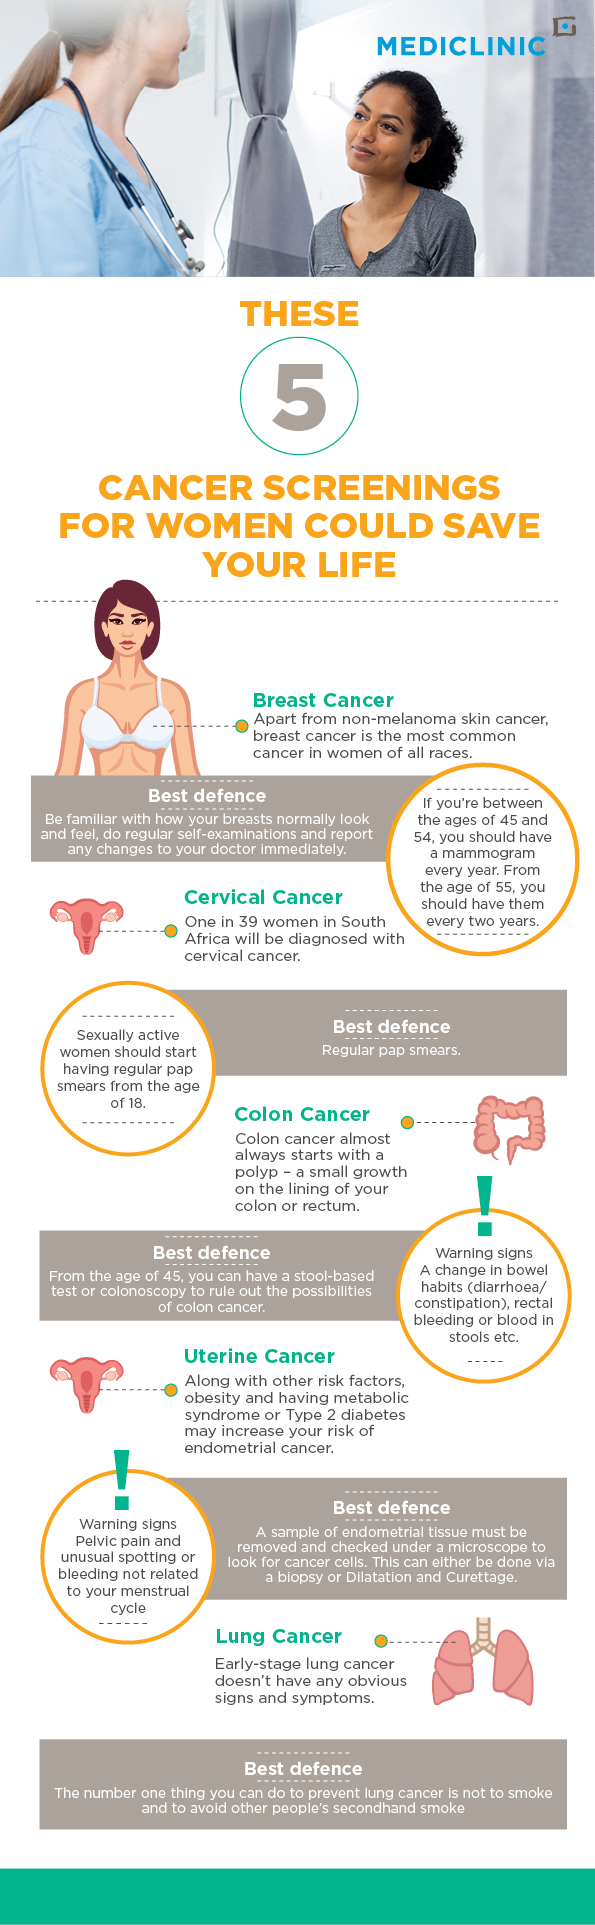 cancer infographic, five health screenings for women